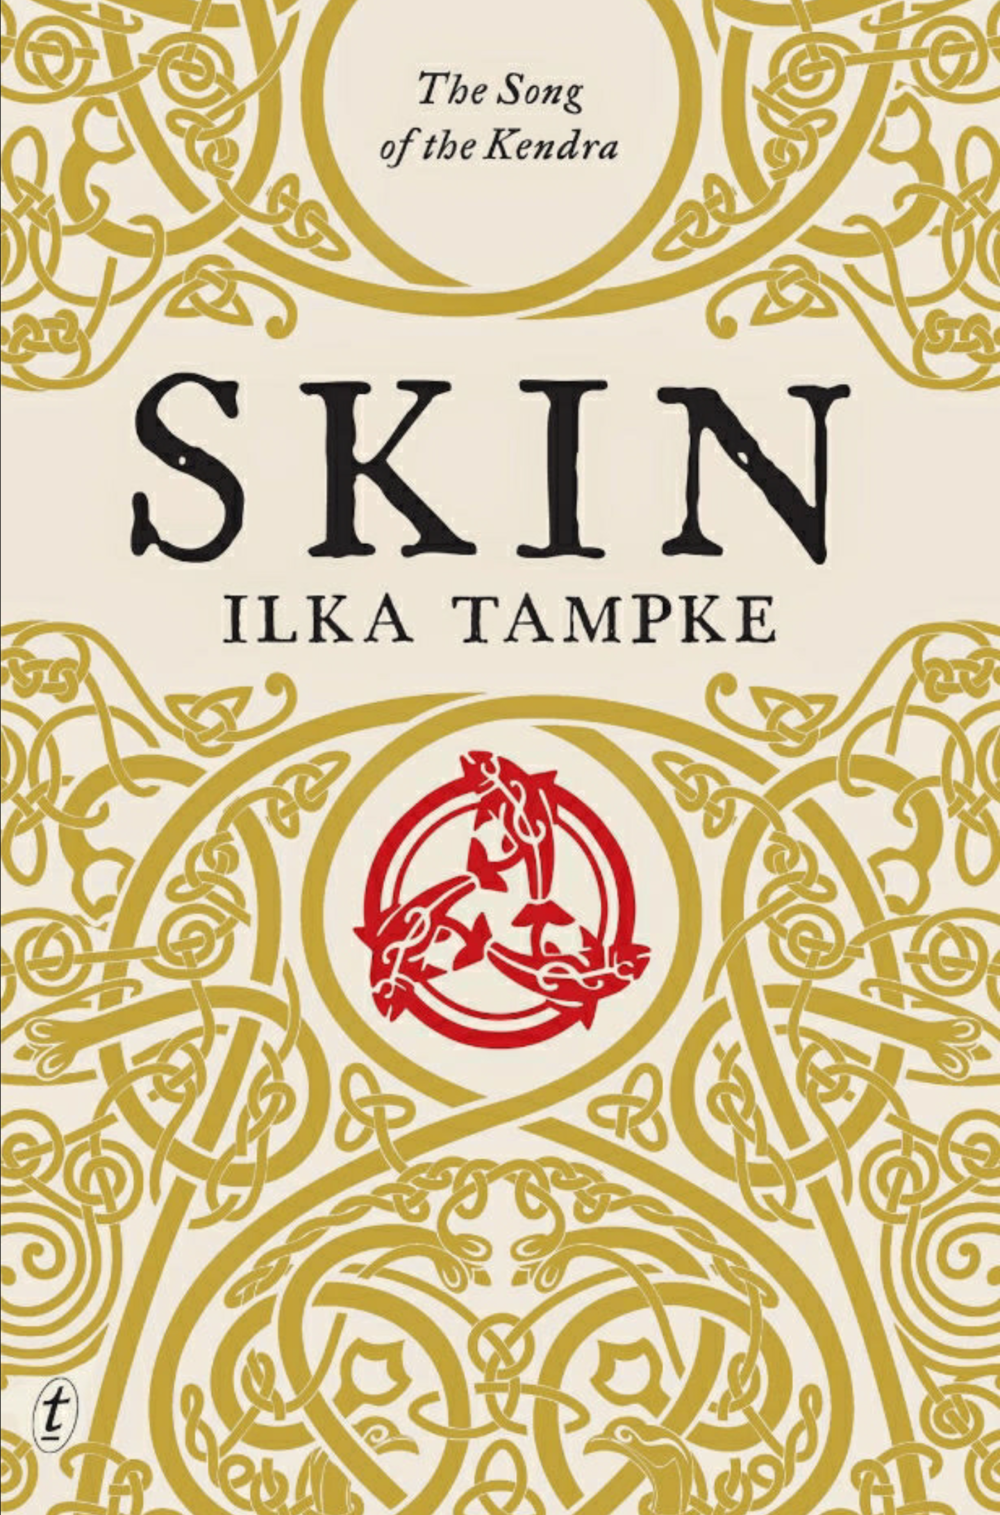 Skin by Ilka Tampke FIRST PUBLISHED BY Text Publishing, February 25, 2015 GENRES: FANTASY, ADULT FICTION, ROMANCE, CULTURAL, TRIBAL PAGES: 356 FORMAT: PAPERBACK SOURCE: PURCHASED PACING: {3.8/5}